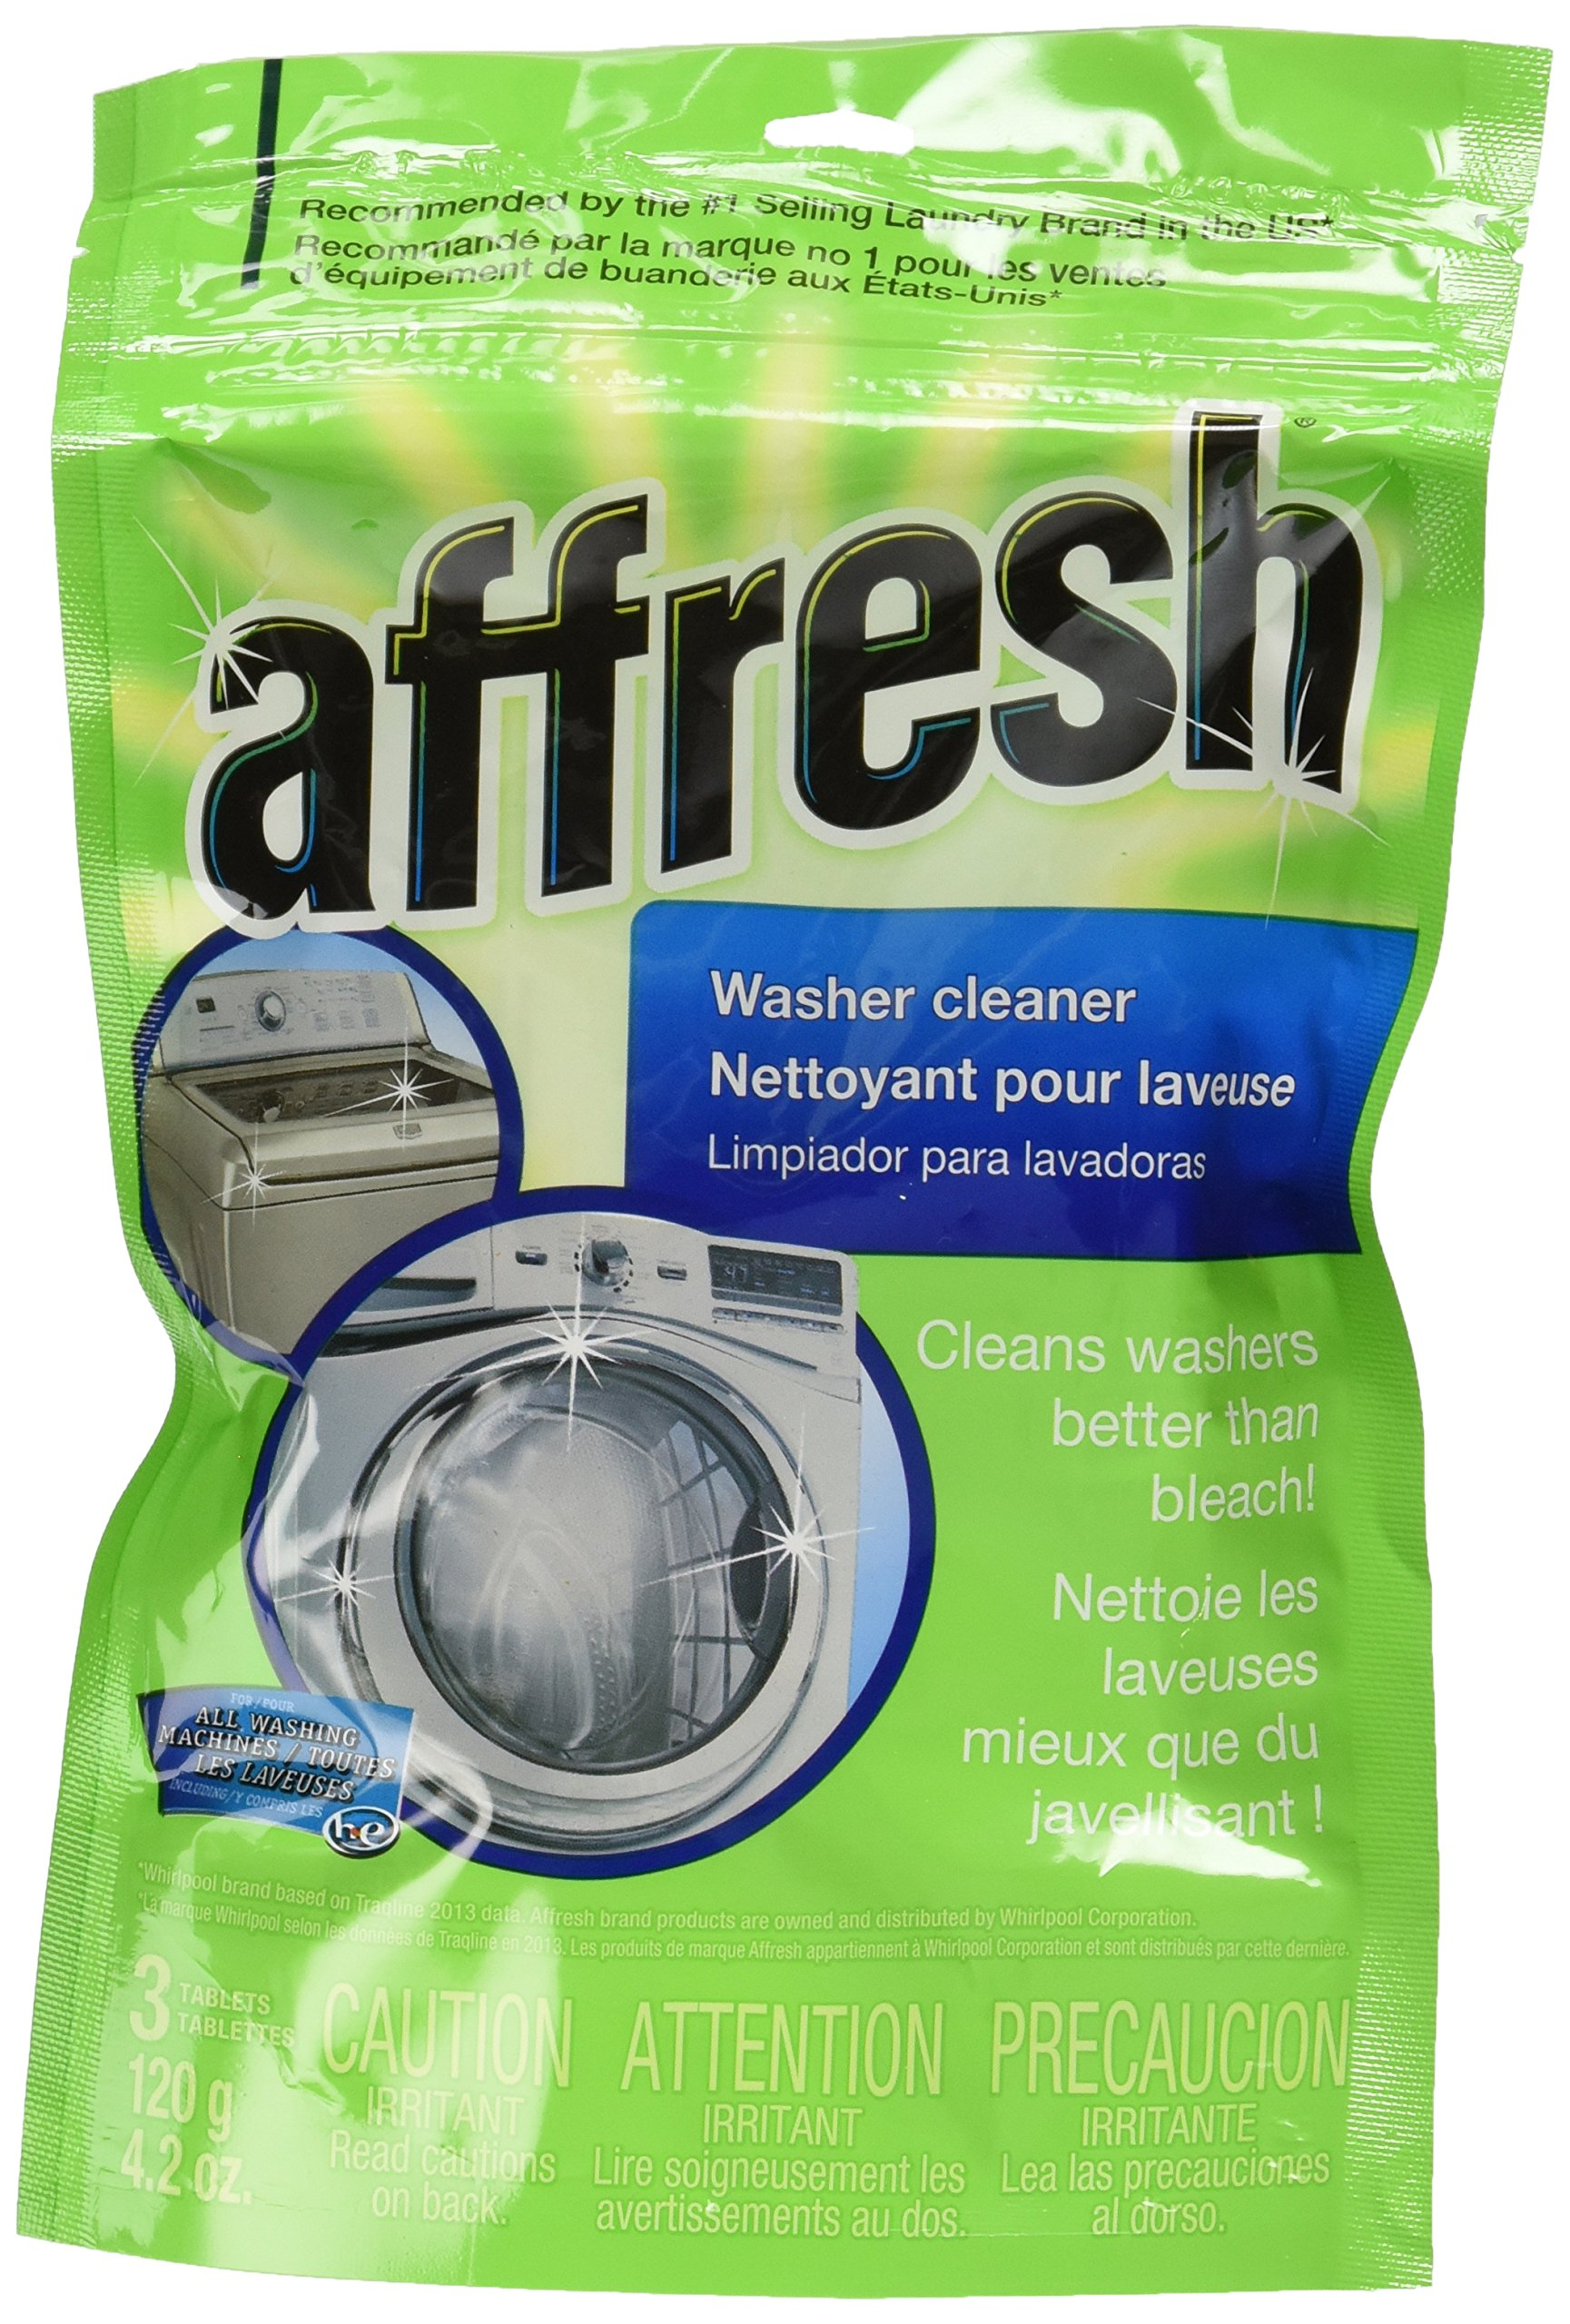 Affresh Whirlpool All Washing Machine Washer Cleaner - 9 tablets